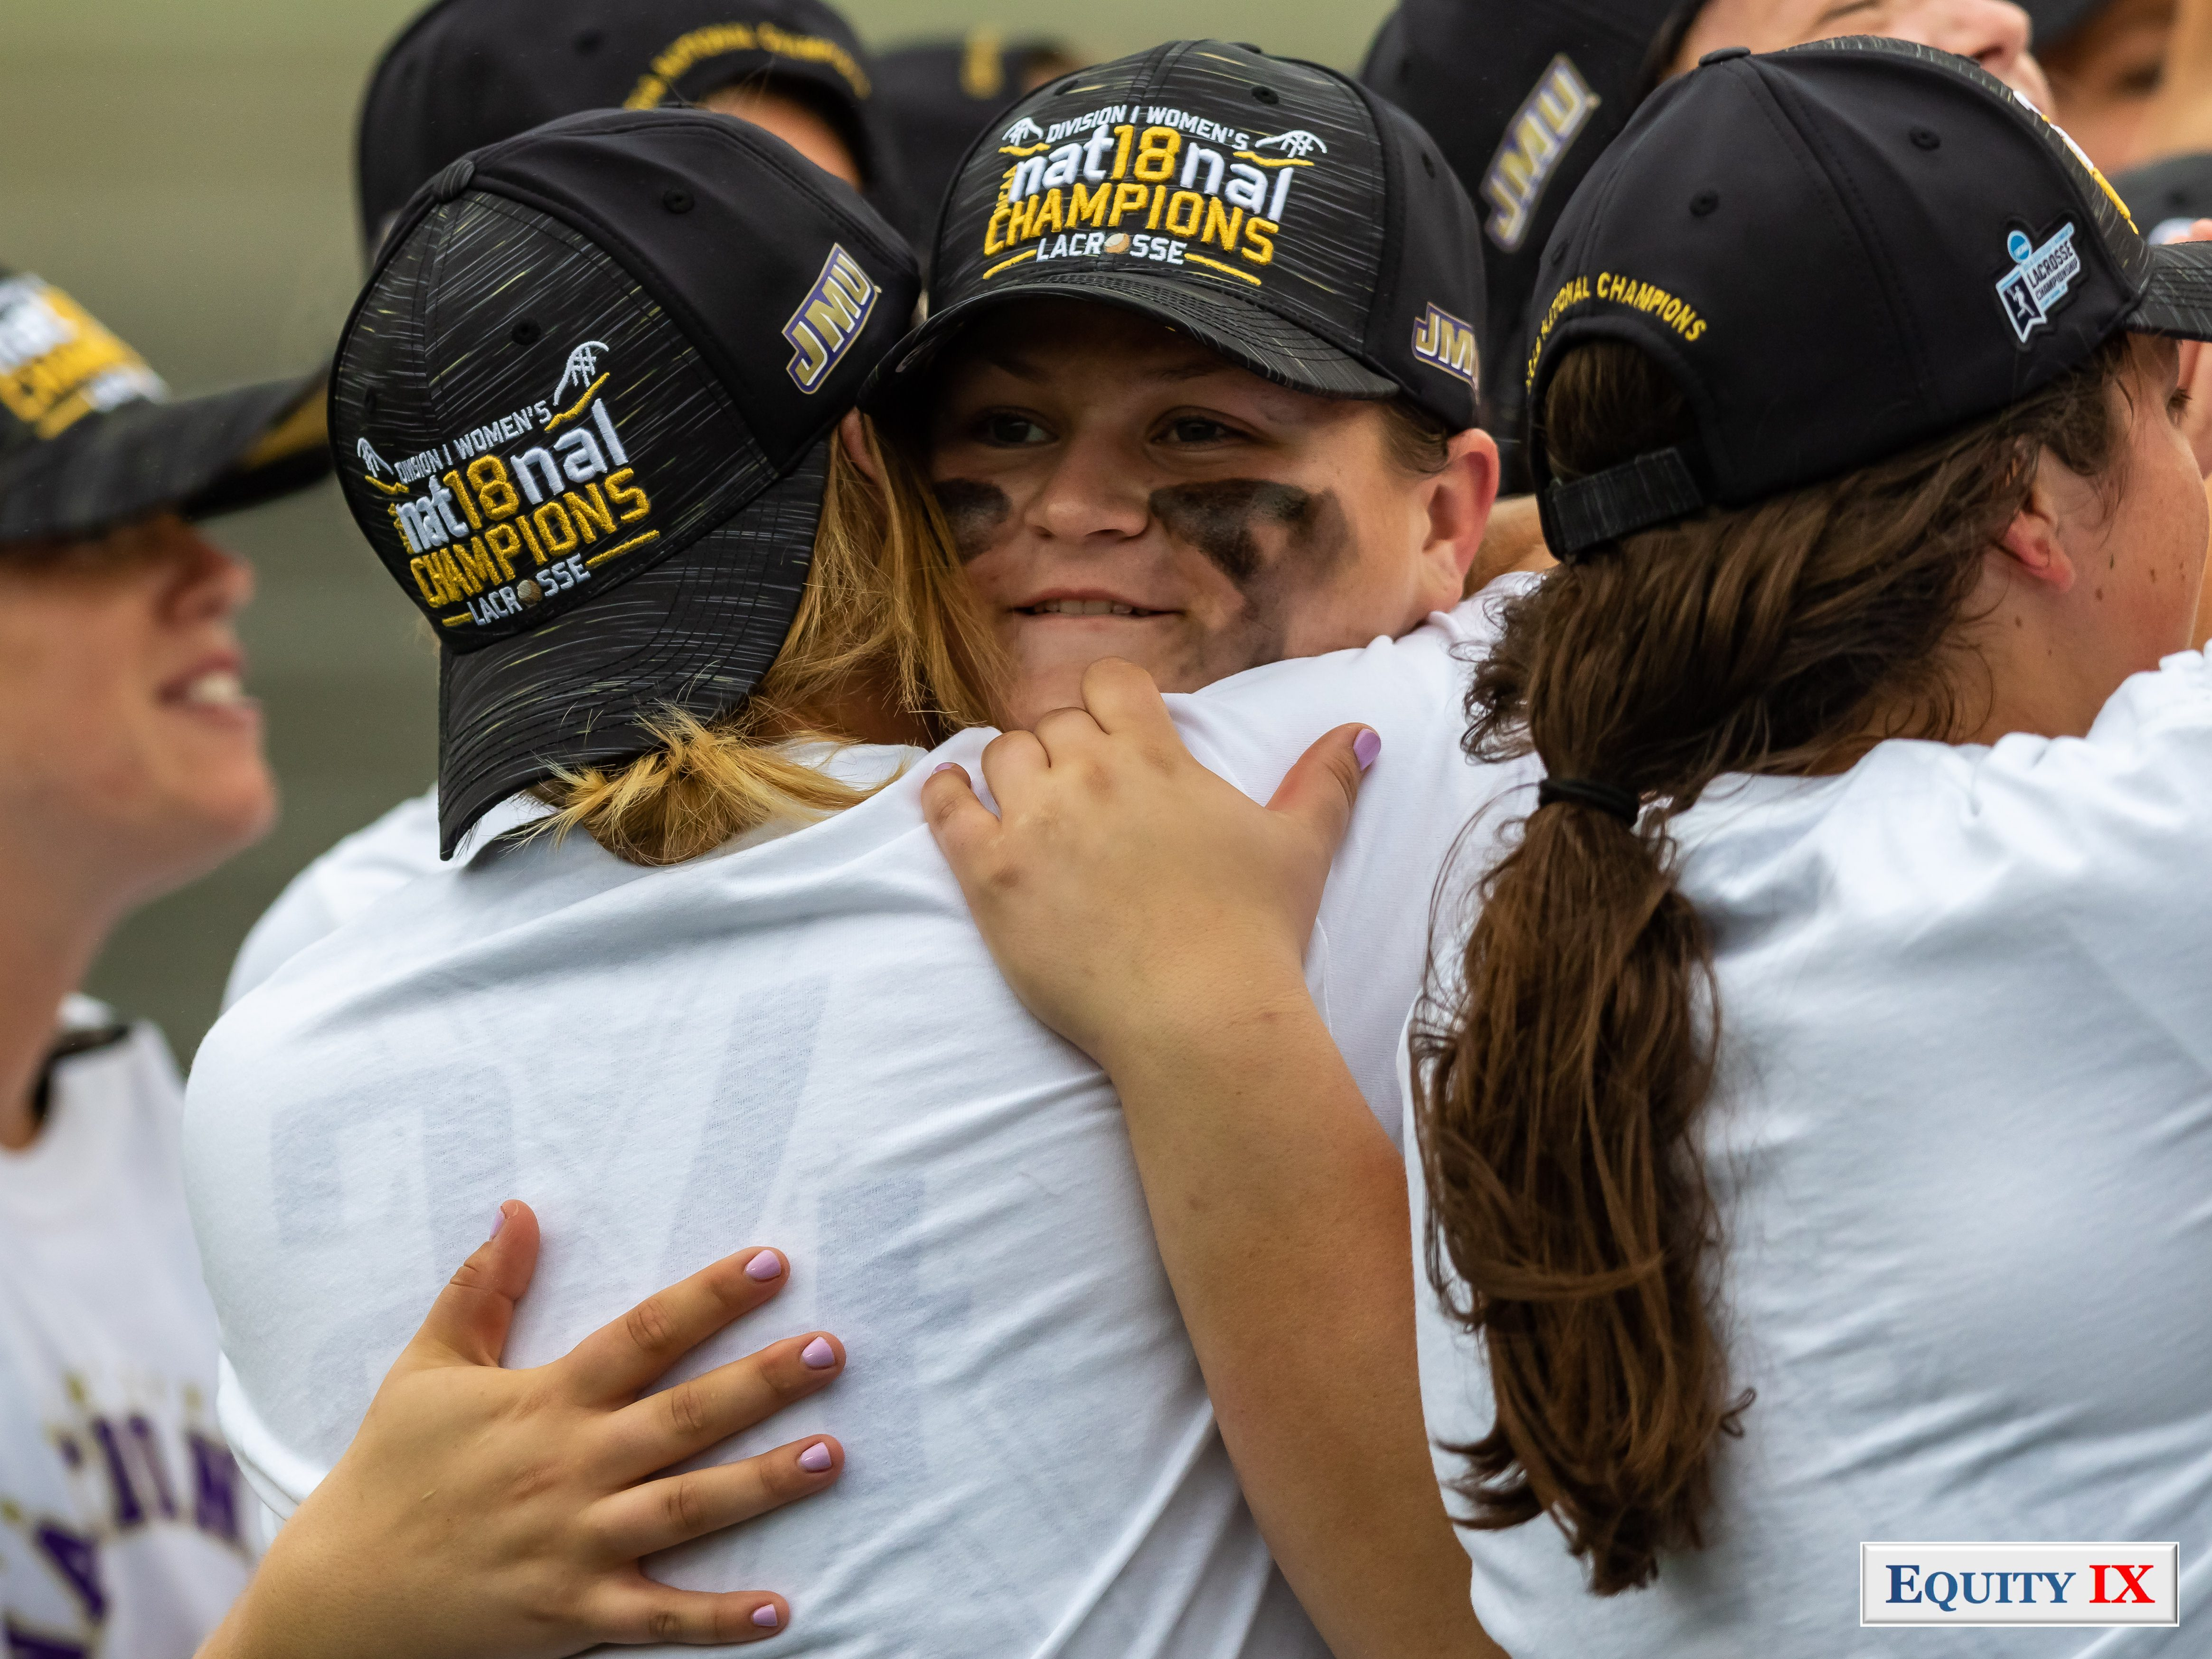 """#33 Molly Dougherty (JMU Goalie) hugs MU teammate after winning national title both female players are wearing black and gold """"JMU NCAA Division I Women's Lacrosse National Champions"""" baseball hats, Molly has smudged eyeblack on her cheeks - 2018 NCAA Women's Lacrosse Champions © Equity IX - SportsOgram - Leigh Ernst Friestedt"""